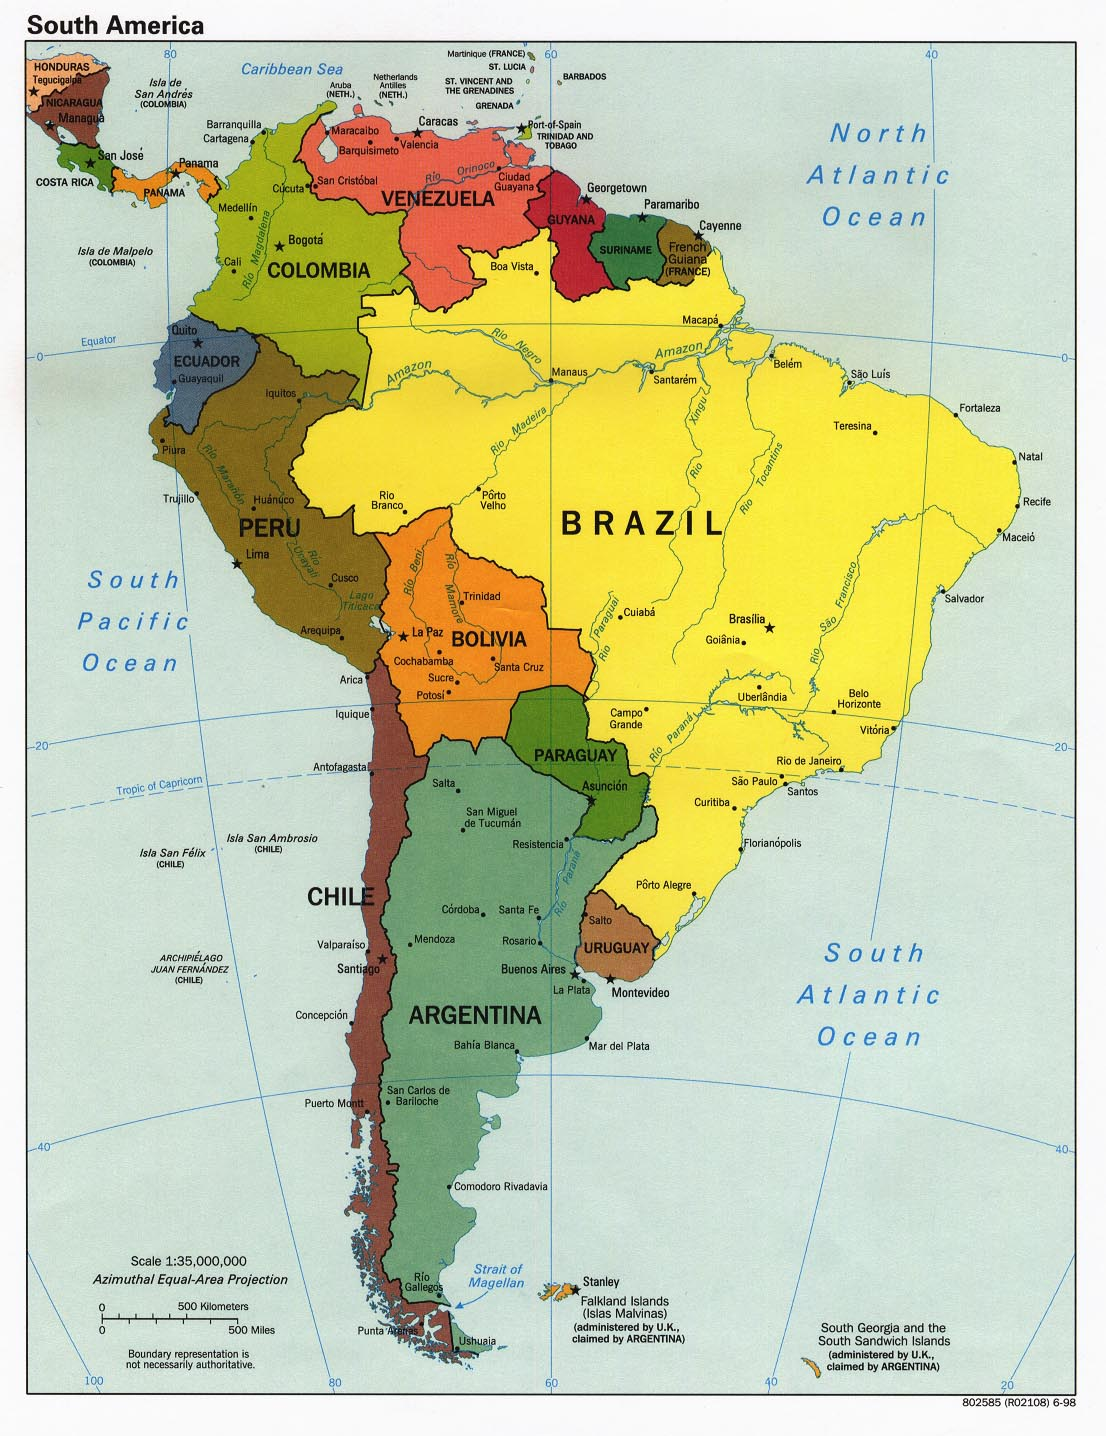 Map Of South America Continent. South America [Political Map] 1998 (323K)